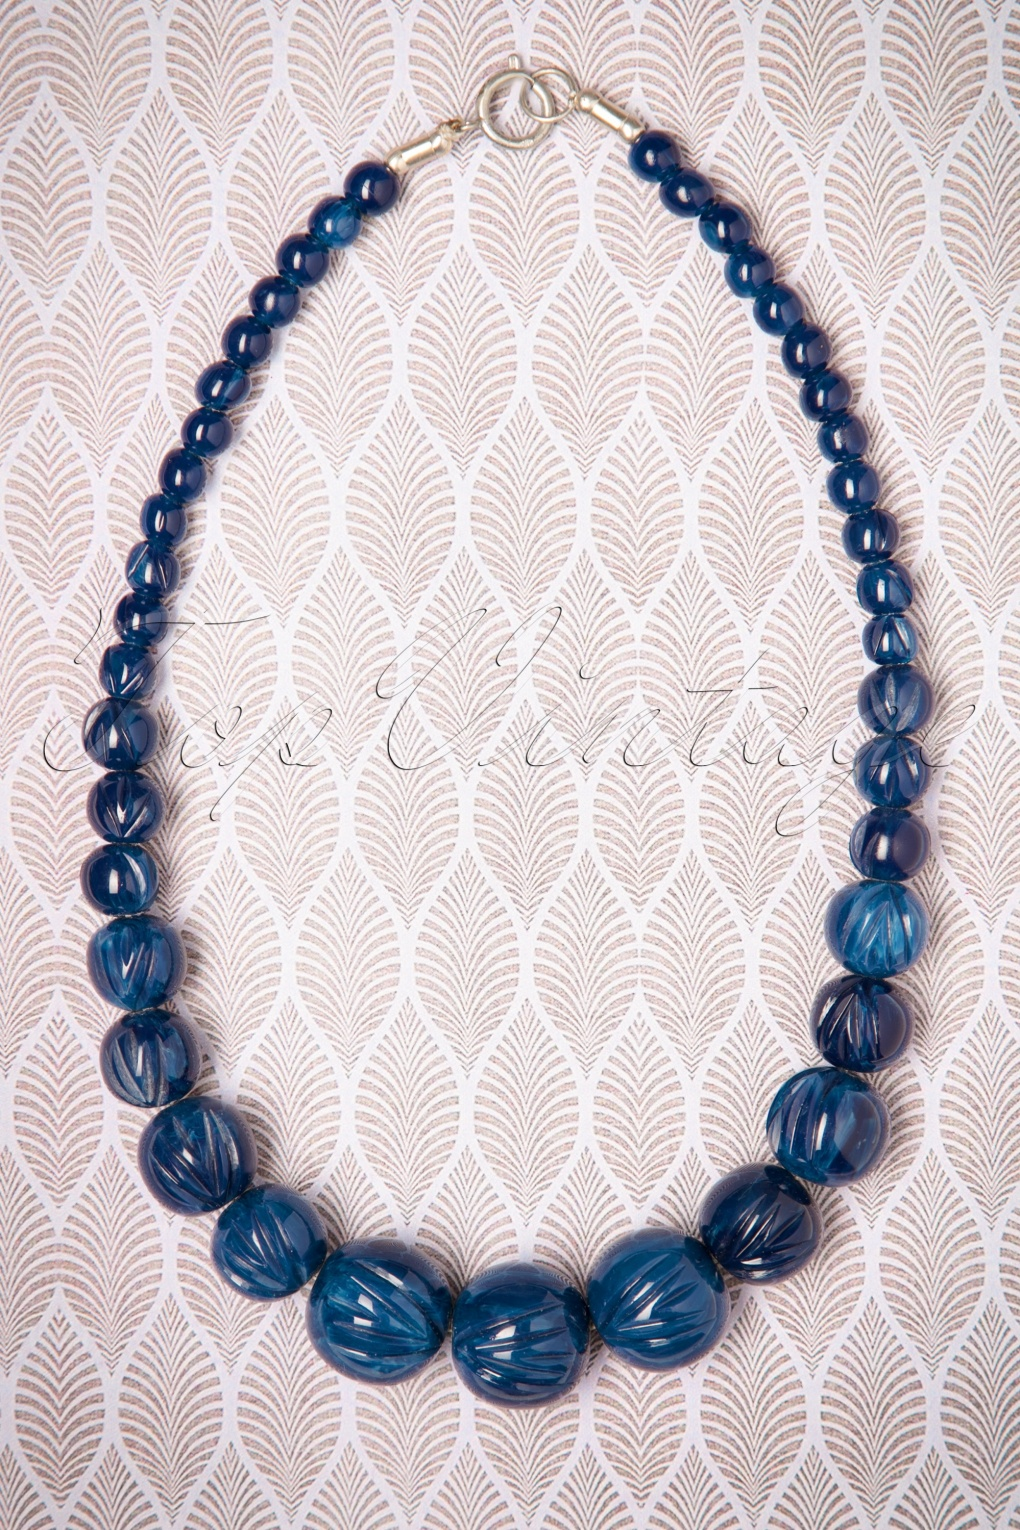 1930s Costume Jewelry TopVintage Exclusive  20s Luna Carved Pearl Necklace in Navy £11.64 AT vintagedancer.com